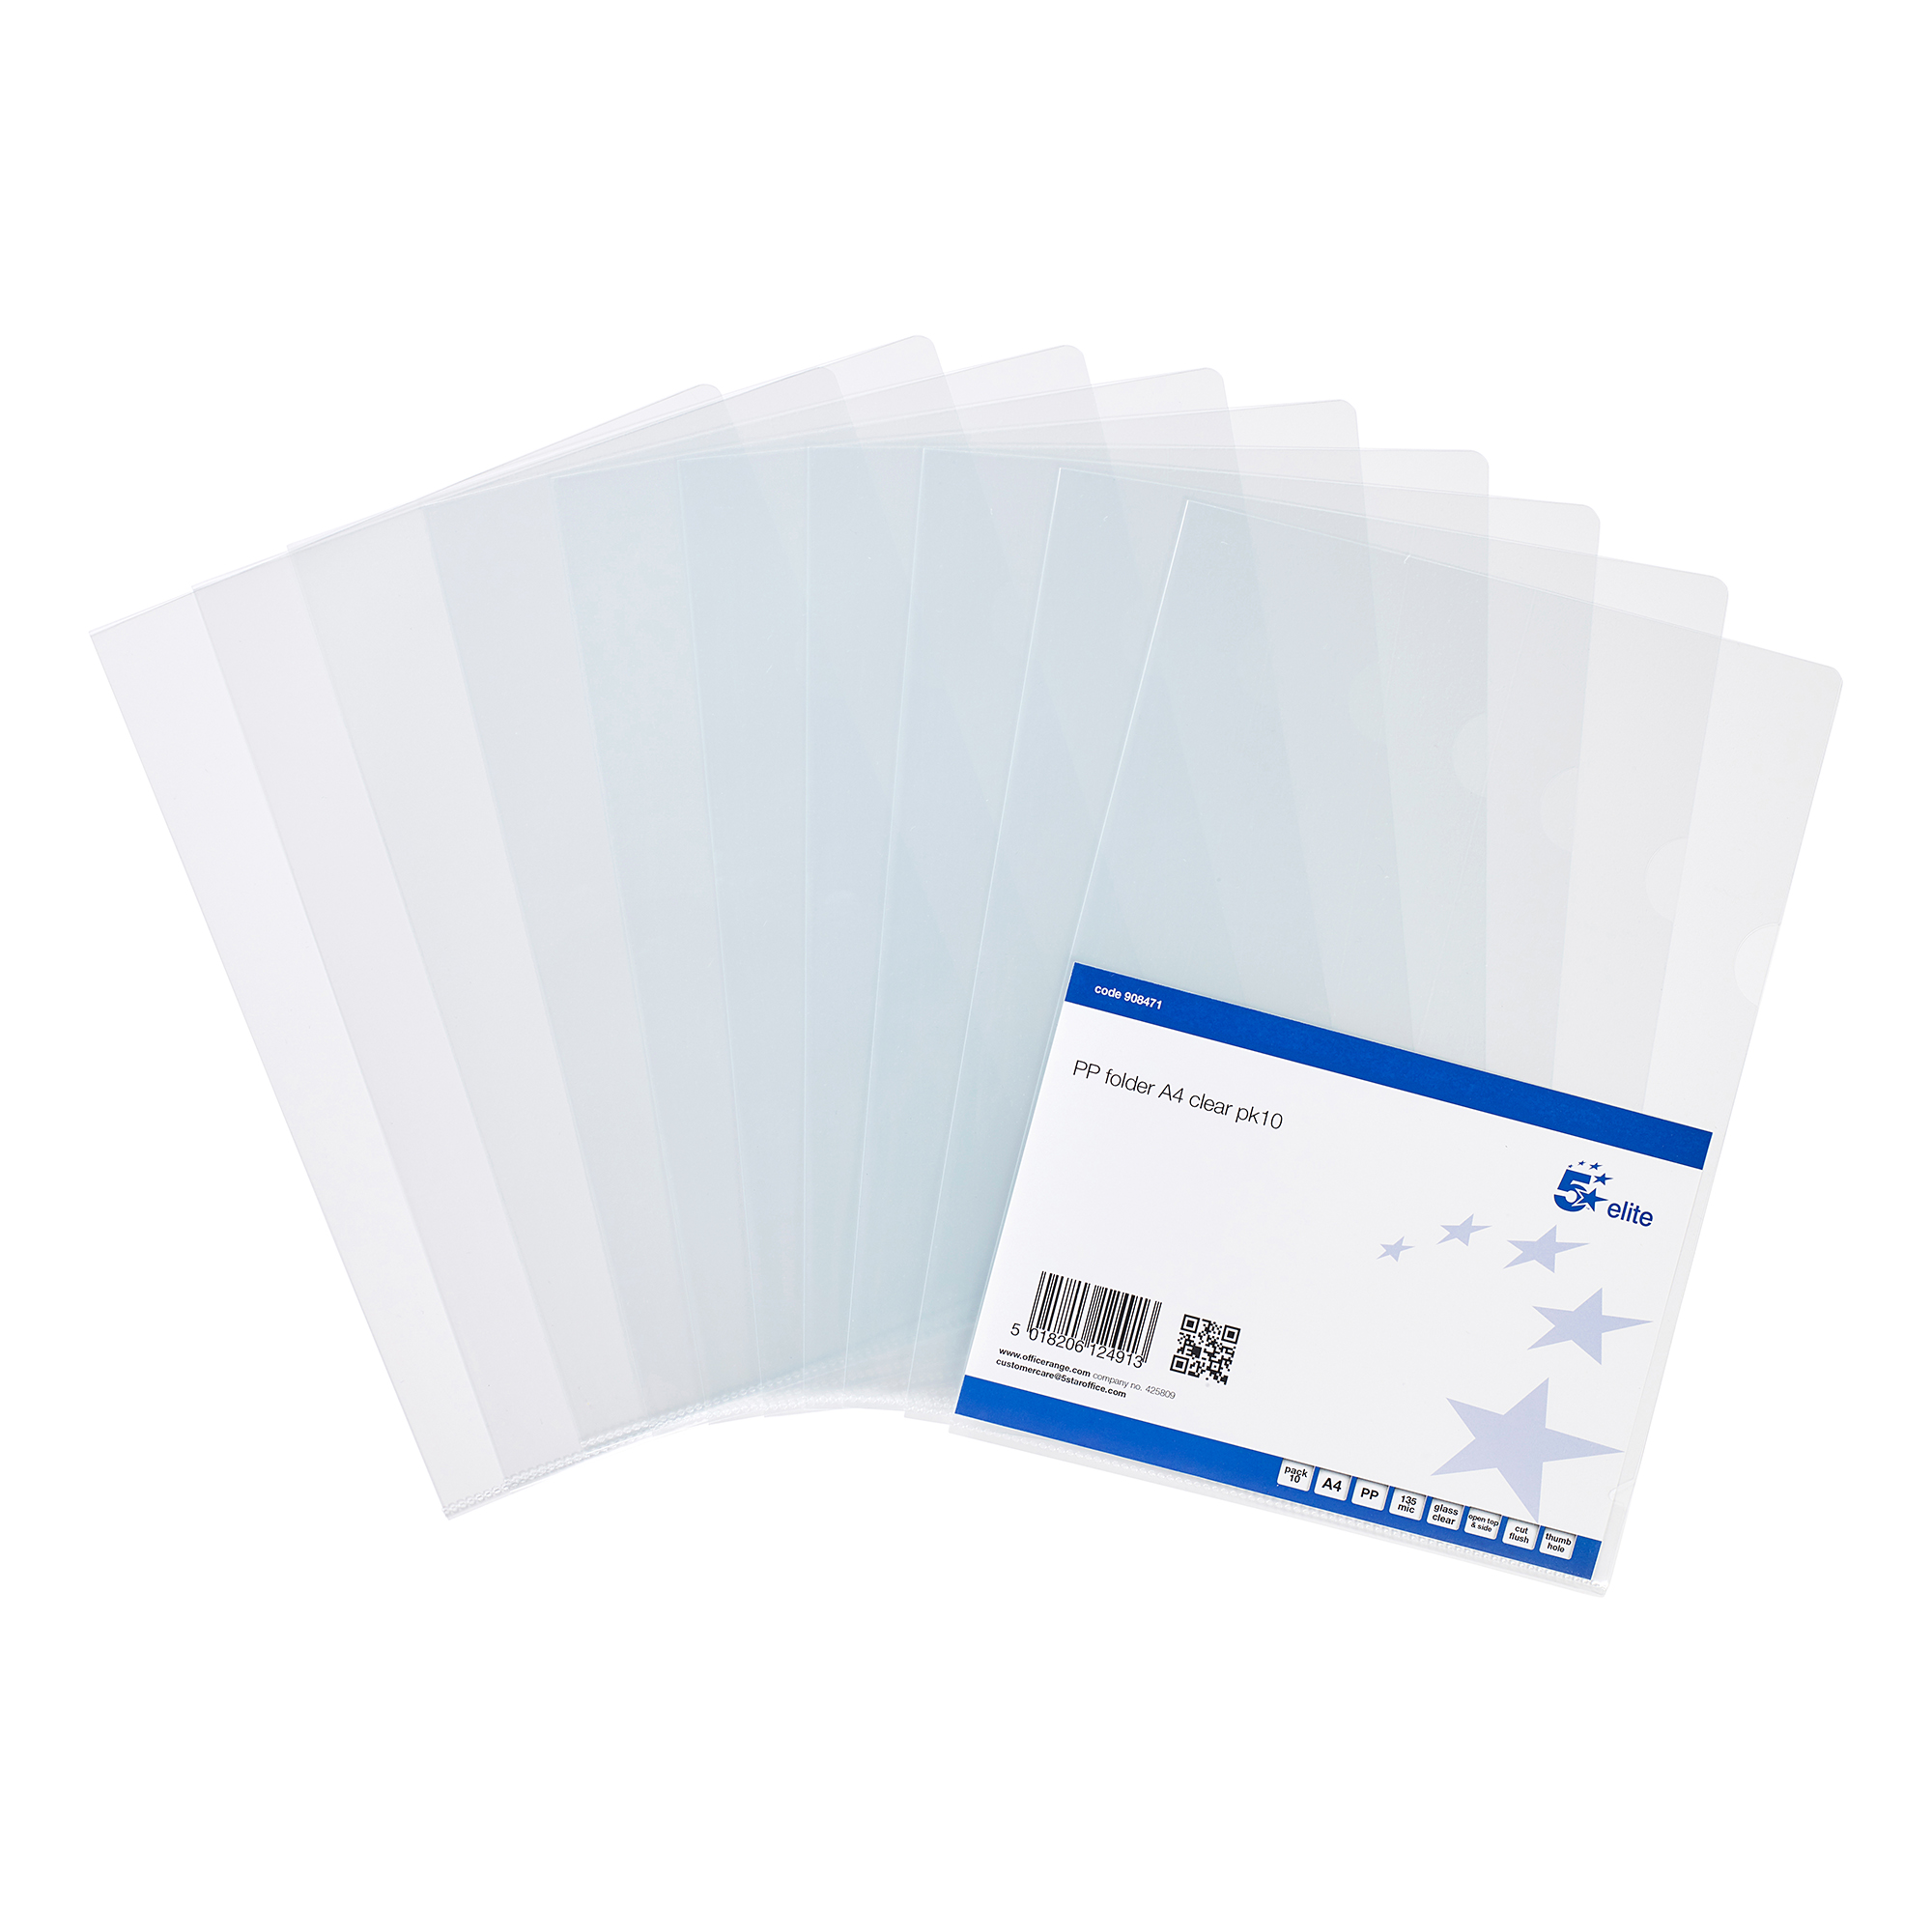 5 Star Folder PVC Cut Flush A4 Clear [Pack 10]